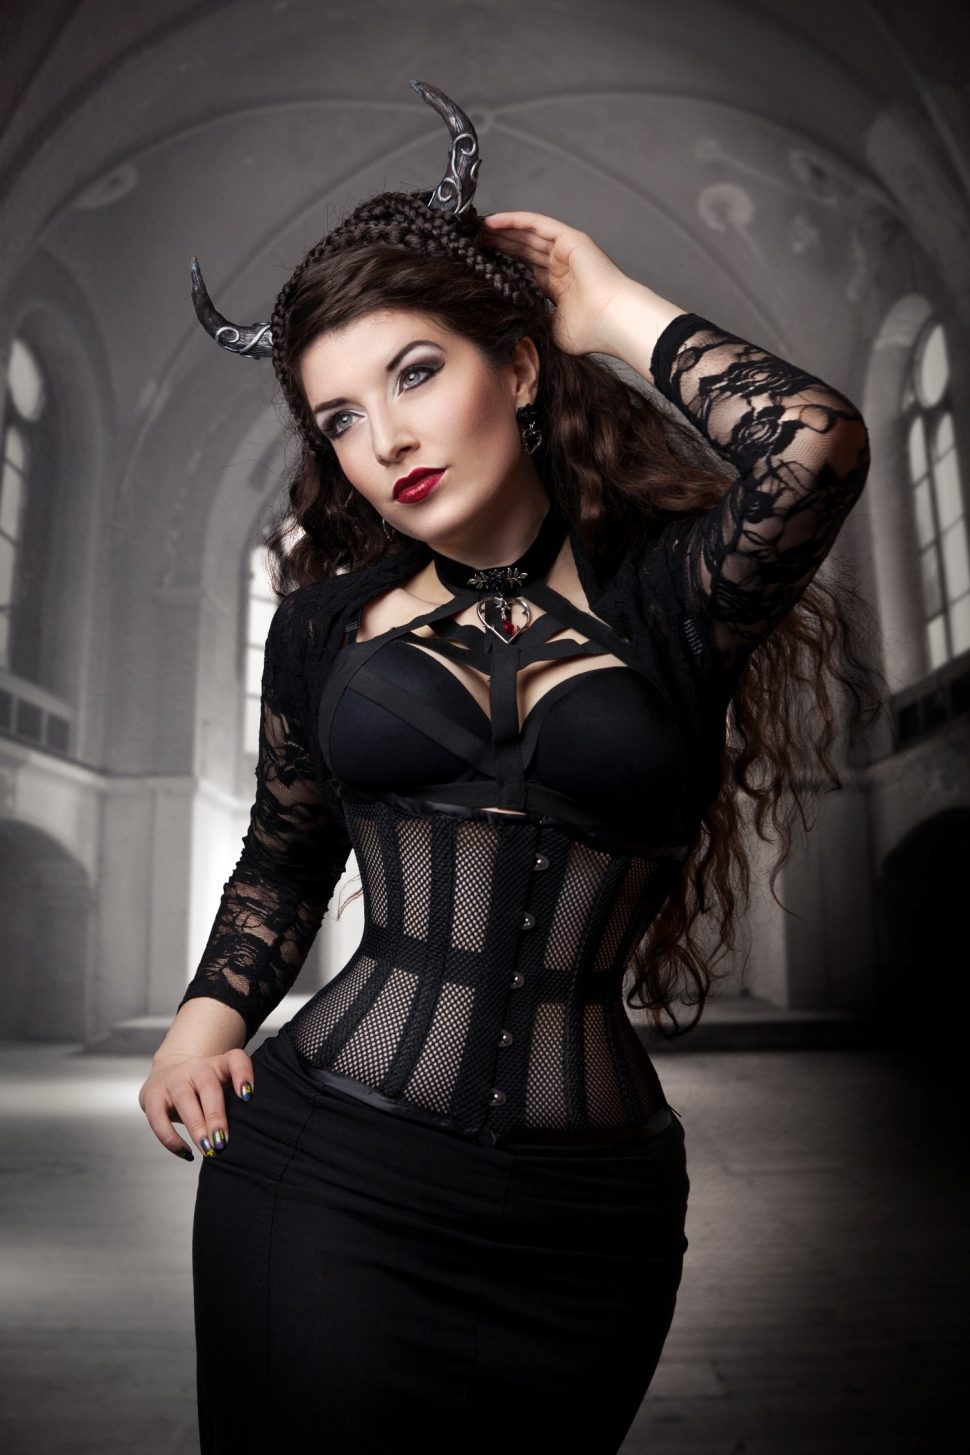 La Esmeralda models the black mesh cincher by True Corset. This corset also comes in red and white.